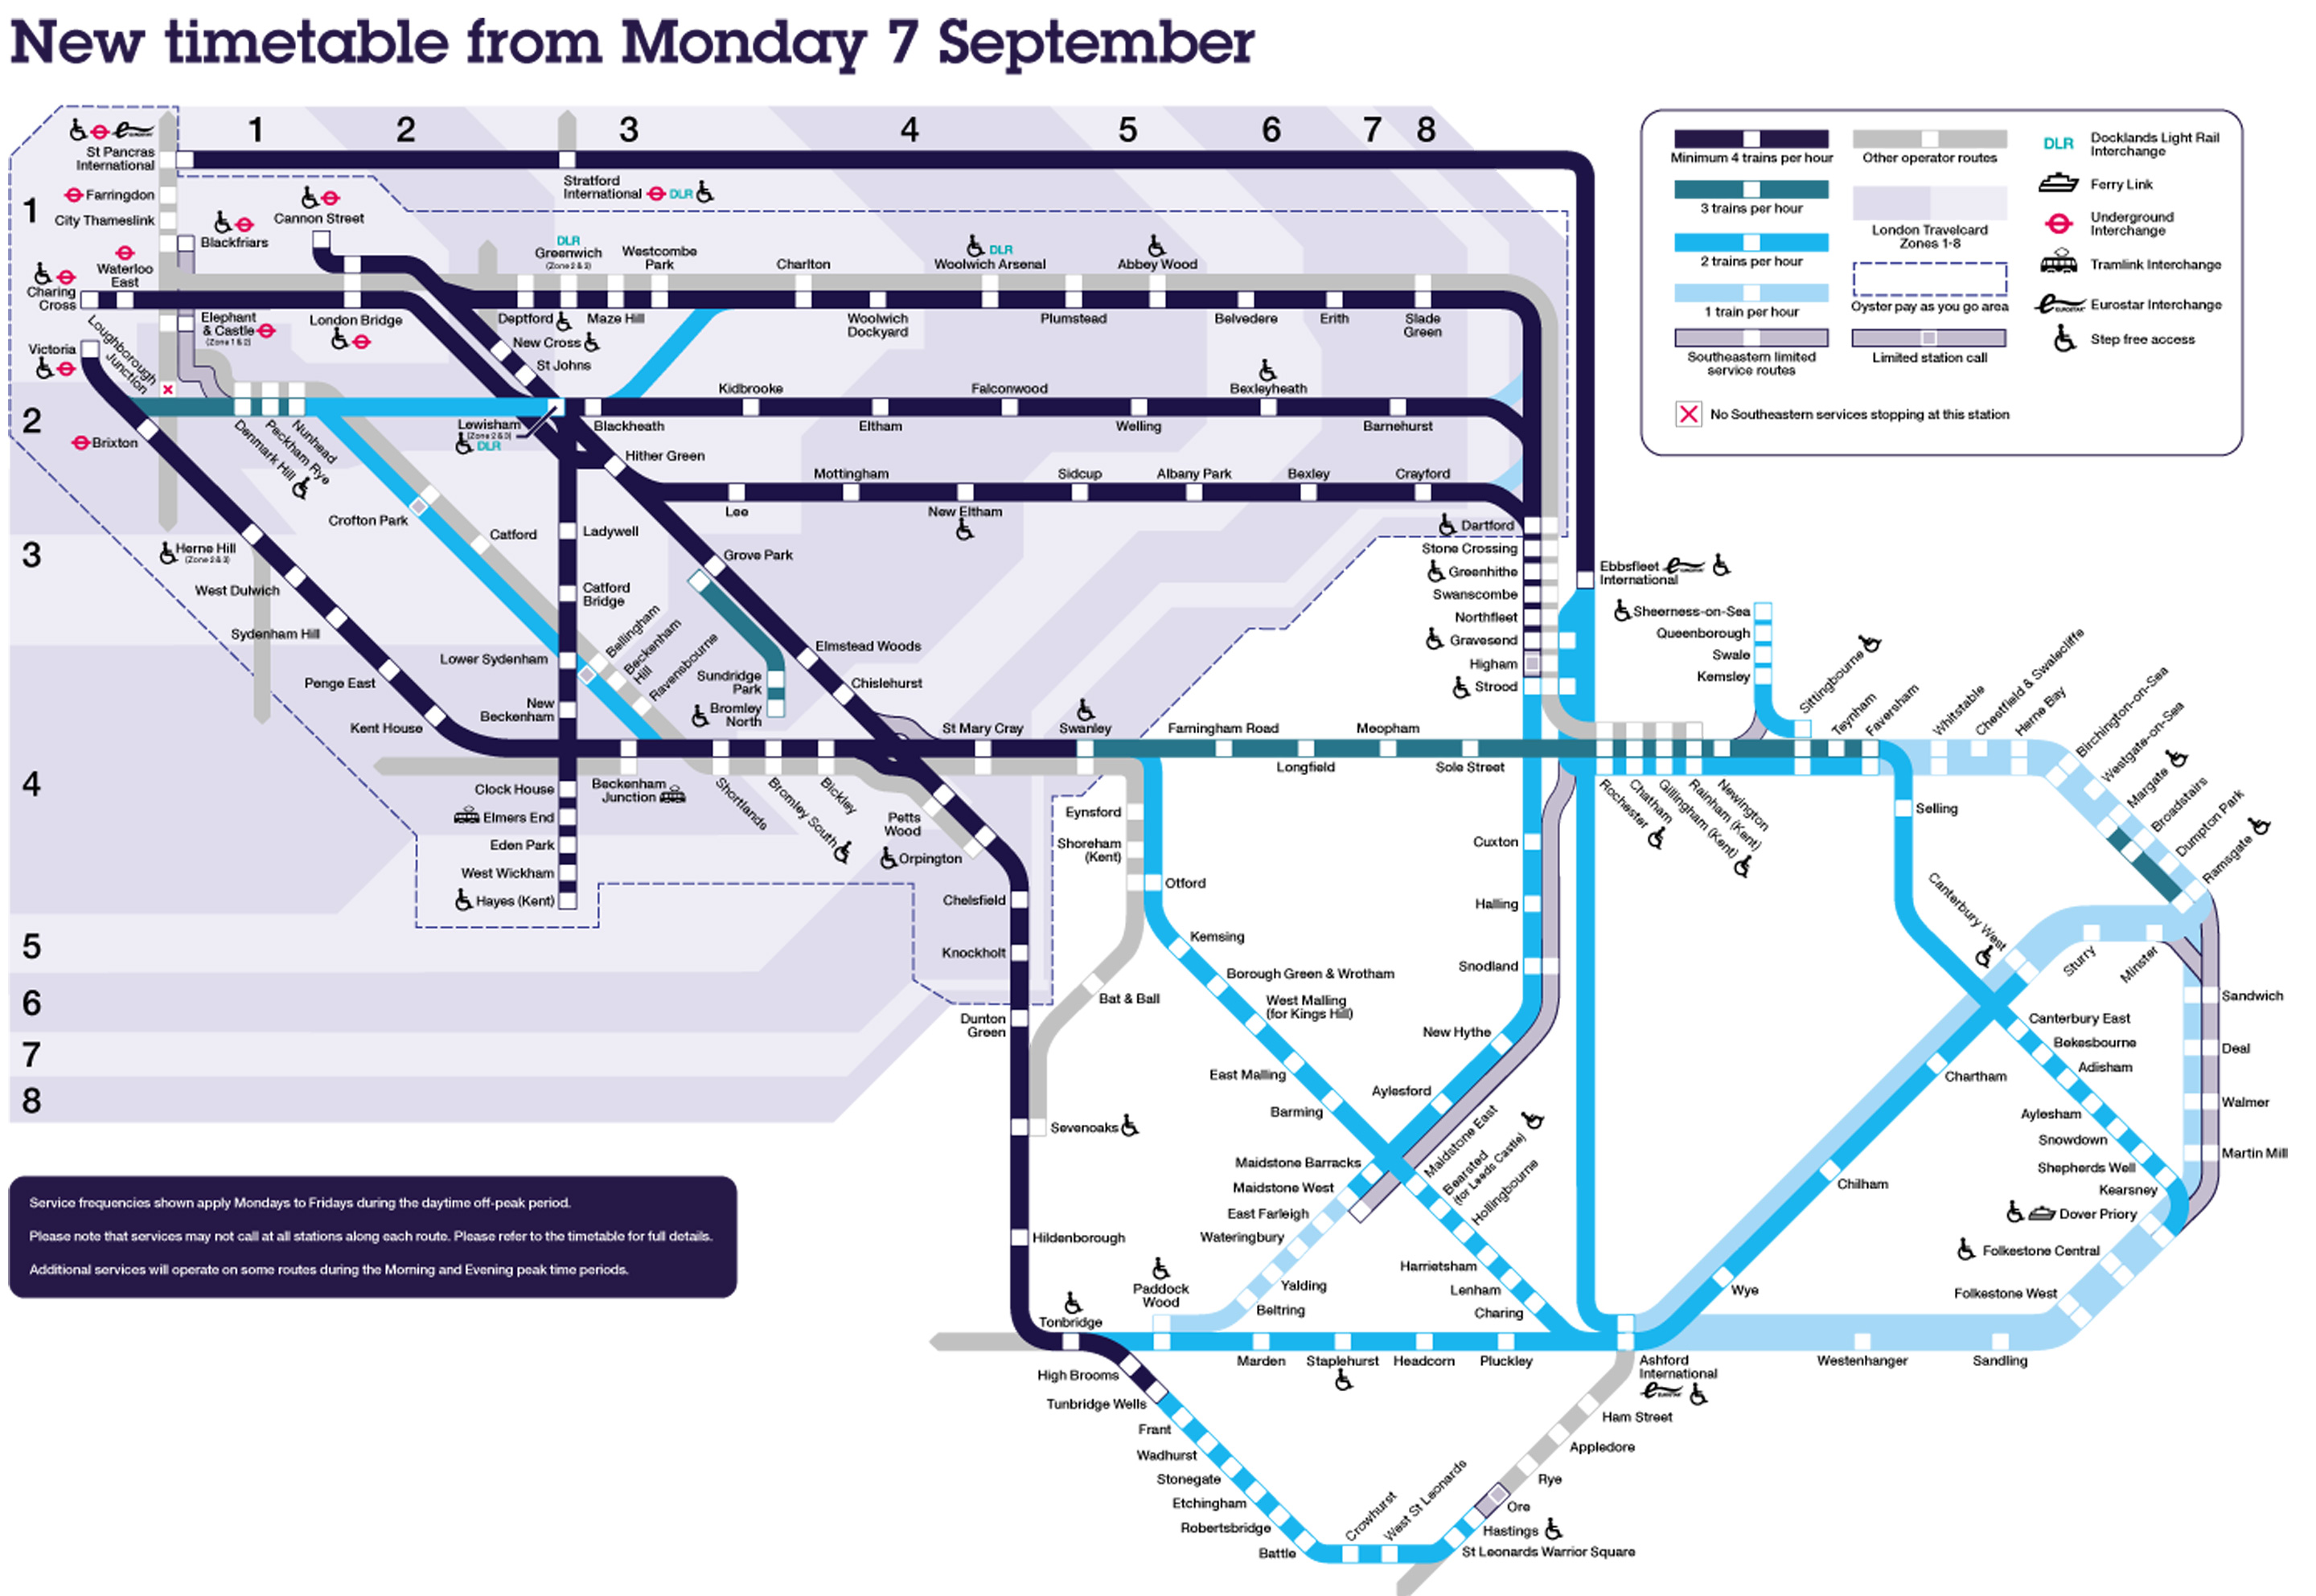 Revised timetable map from 7 September